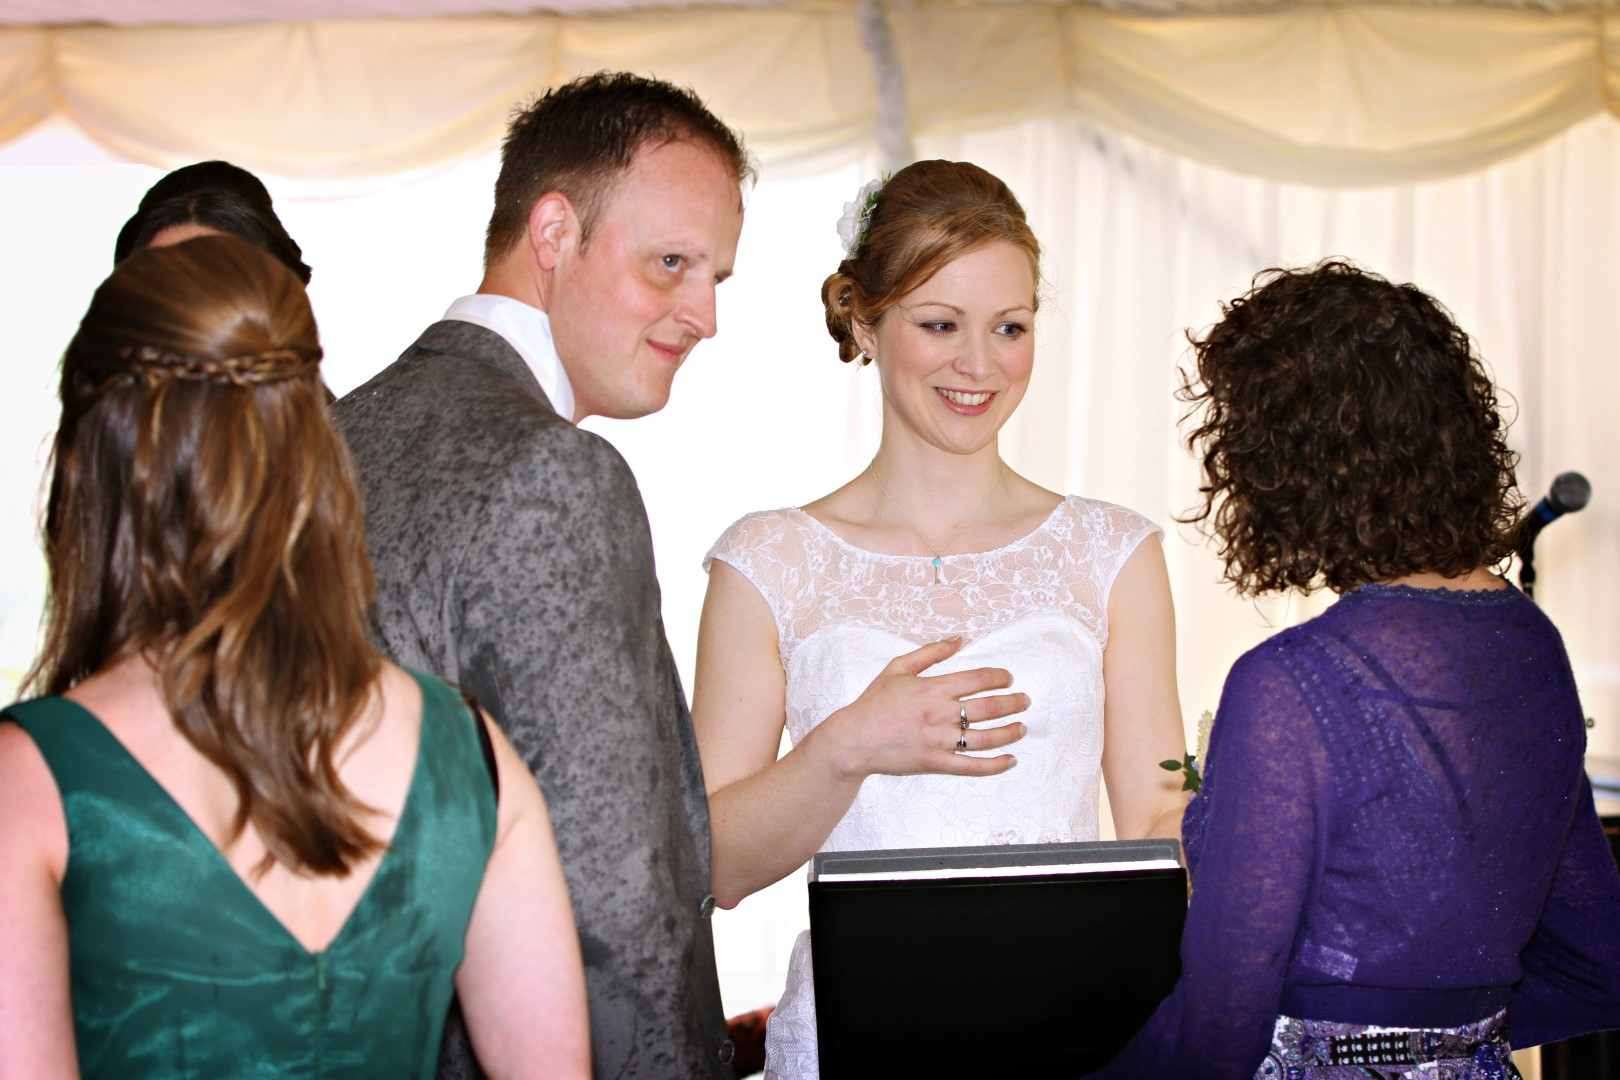 A bride and groom stand with their Celebrant Keli Tomlin. The Bride is smiling at Keli as she speaks. The groom is looking away into the distance, watching something unseen.